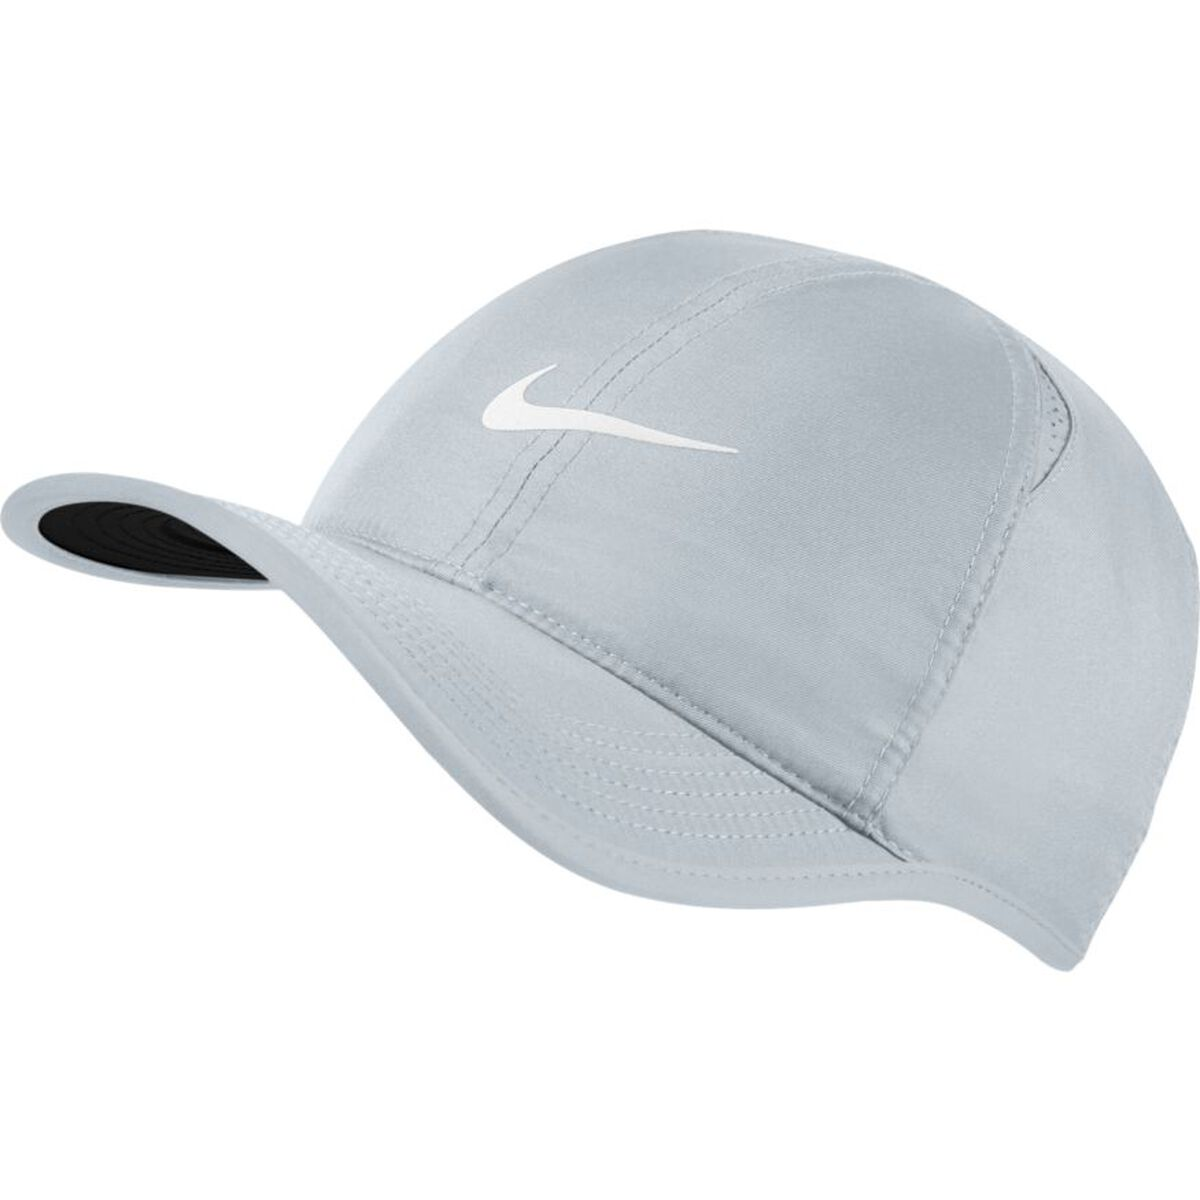 Images. Nike AeroBill Featherlight Tennis Hat a316efa85b